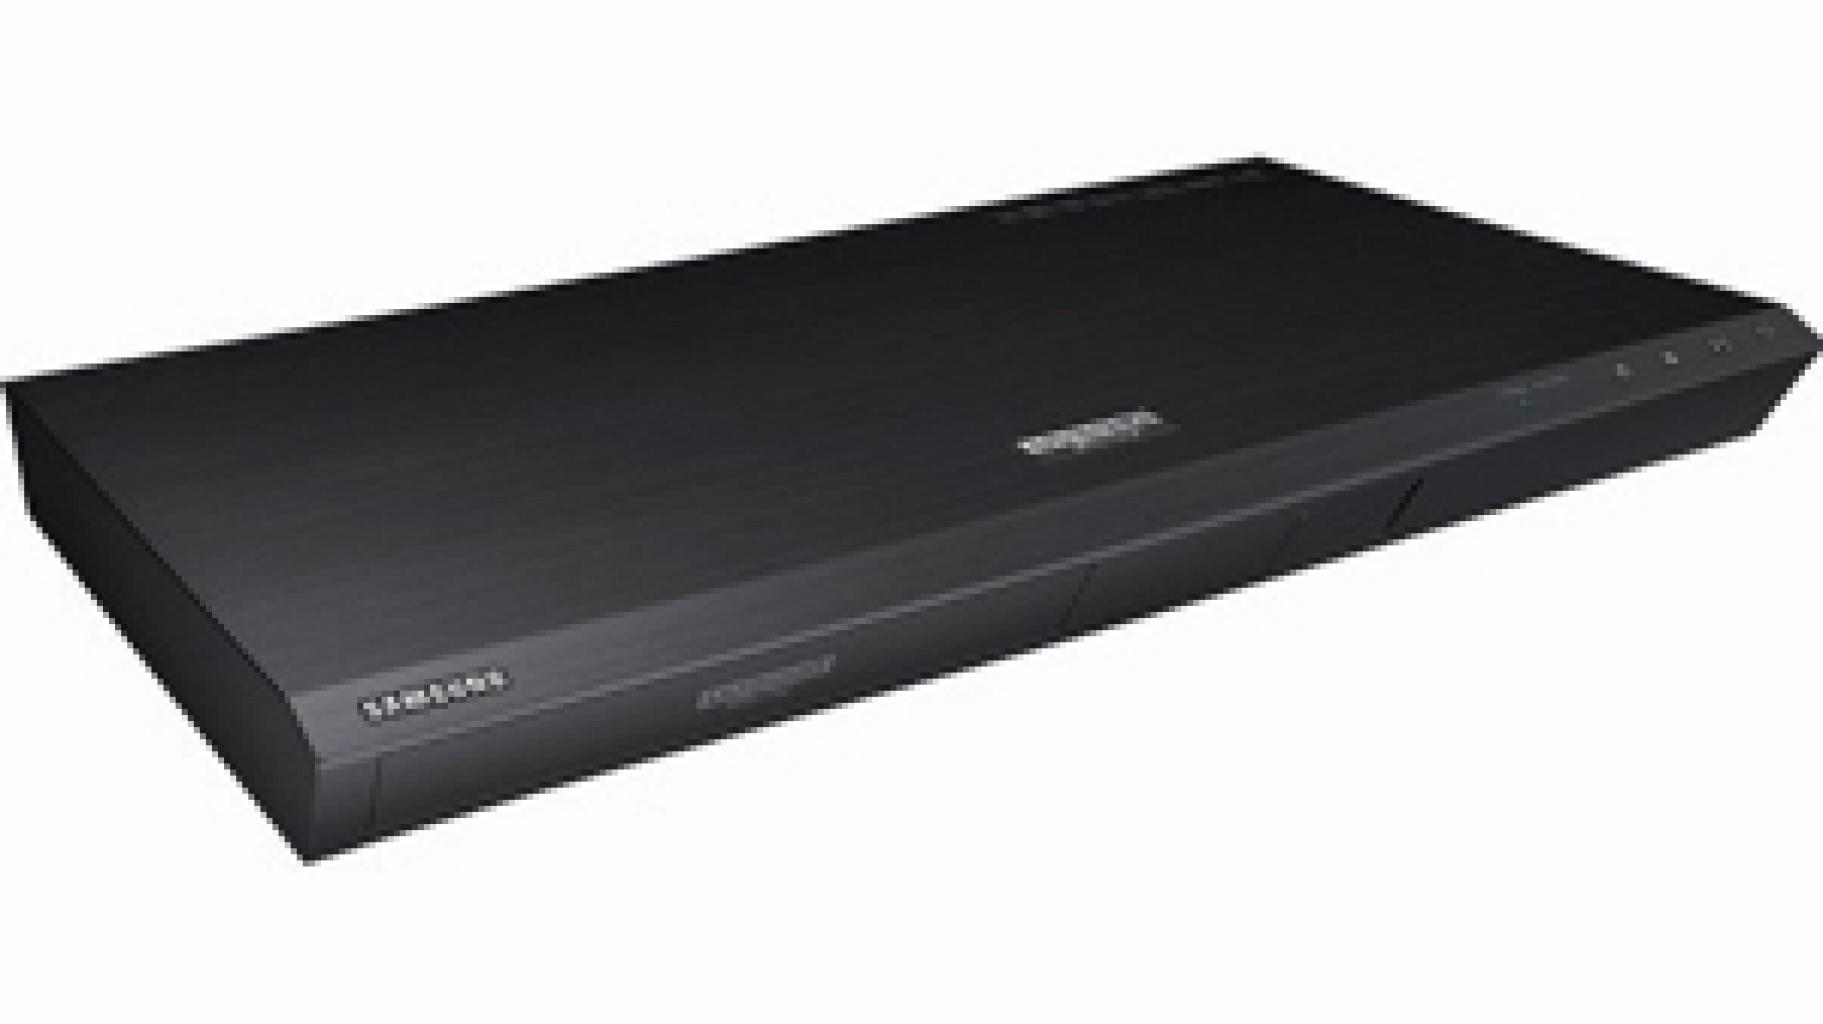 Samsung Beamer Blu Ray Player Beamer New Images Beam